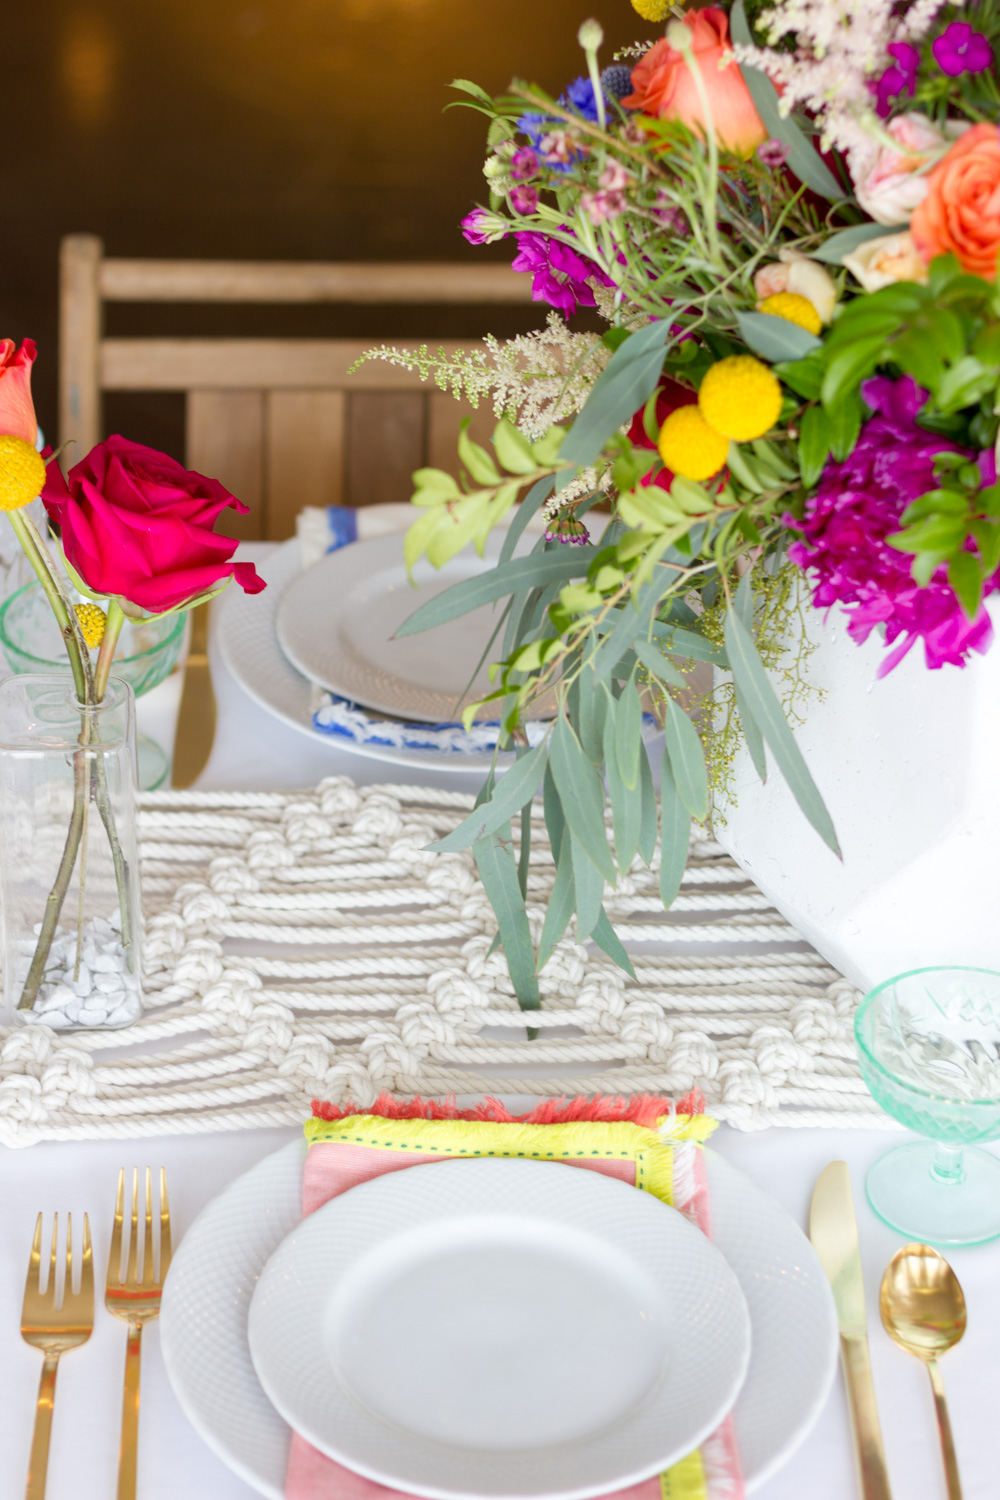 Bohemian Wedding Table Setting8.jpg